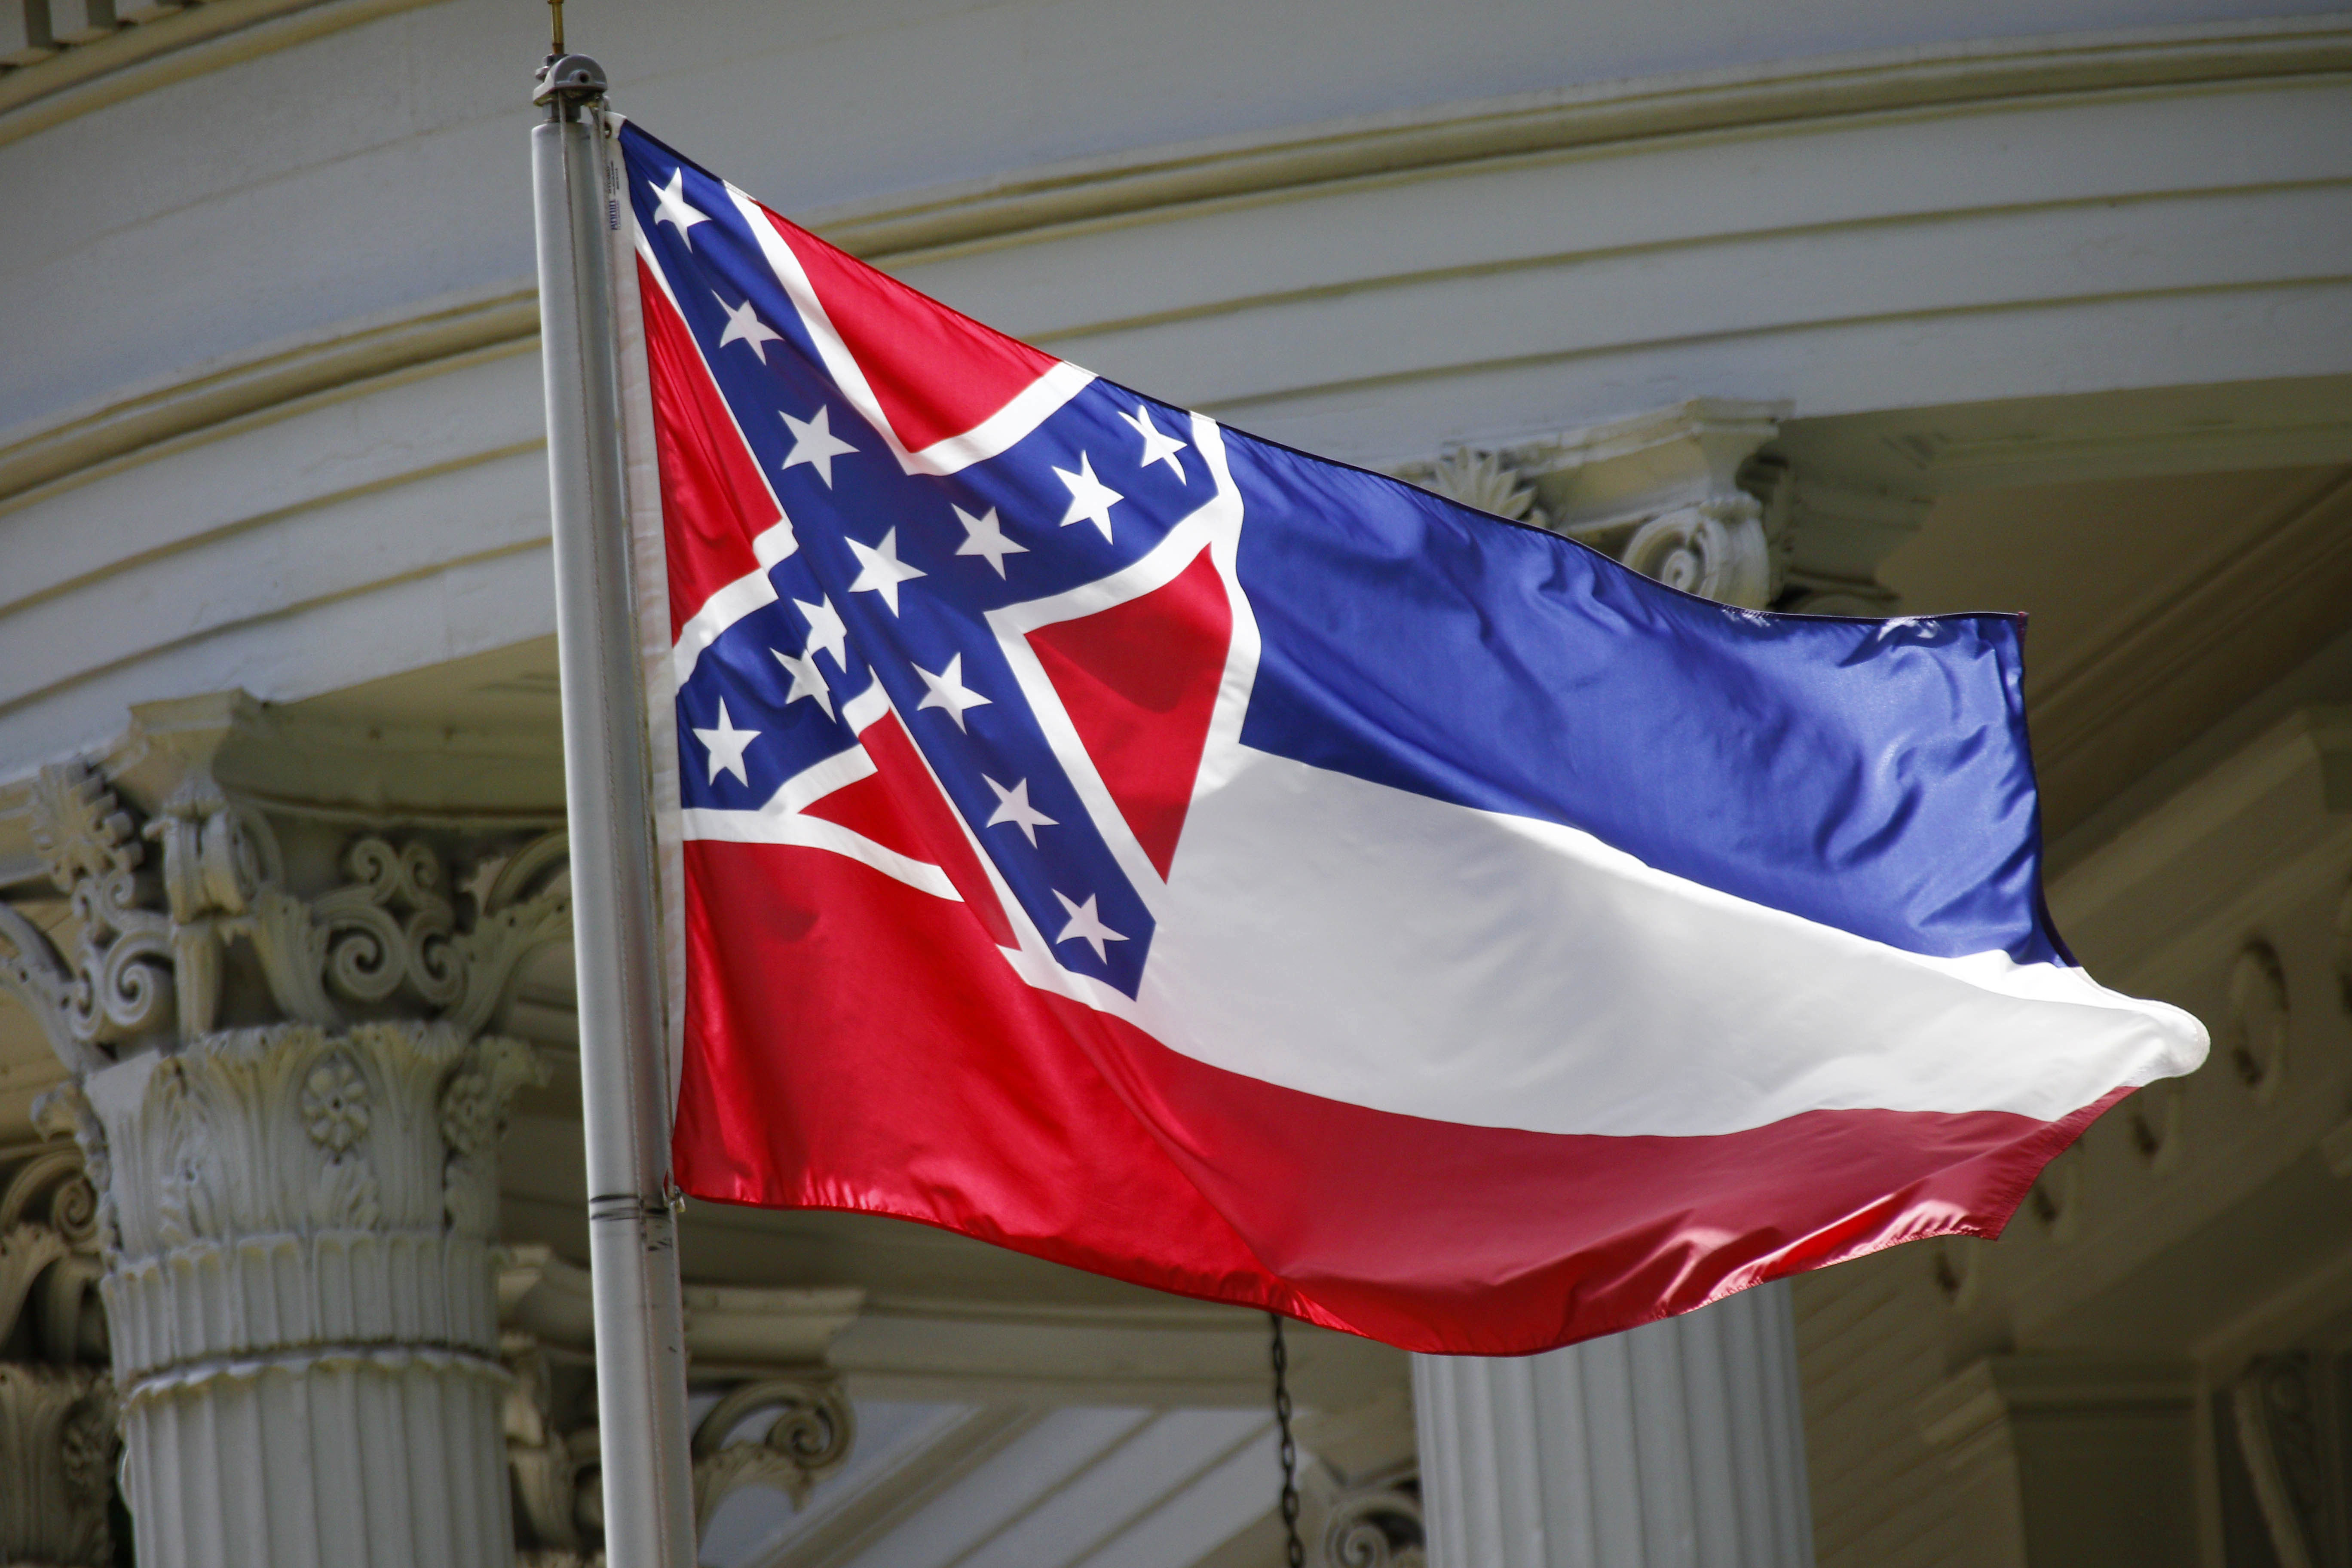 The state flag of Mississippi flies at the governor's mansion in Jackson on June 23, 2015.